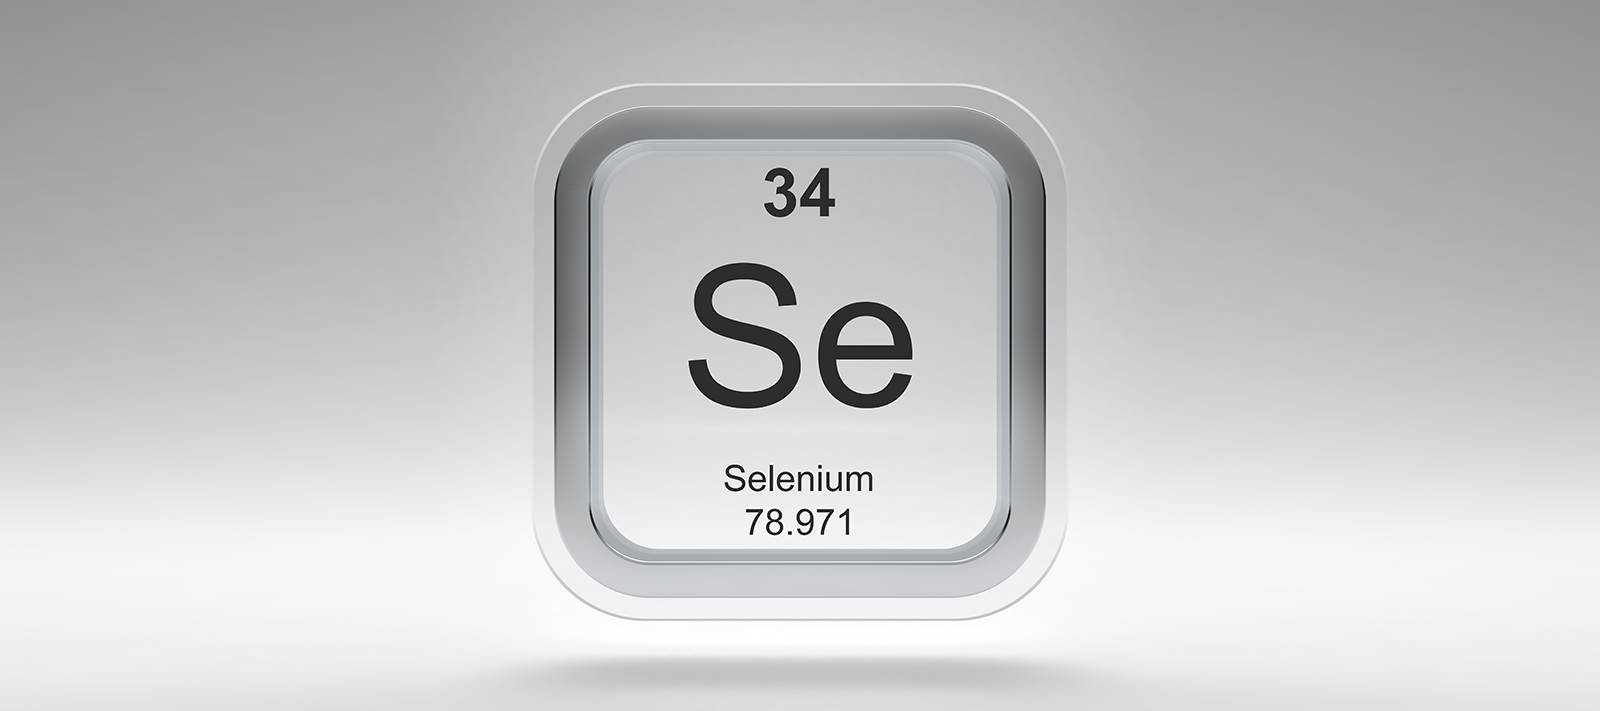 Selenium pros and cons